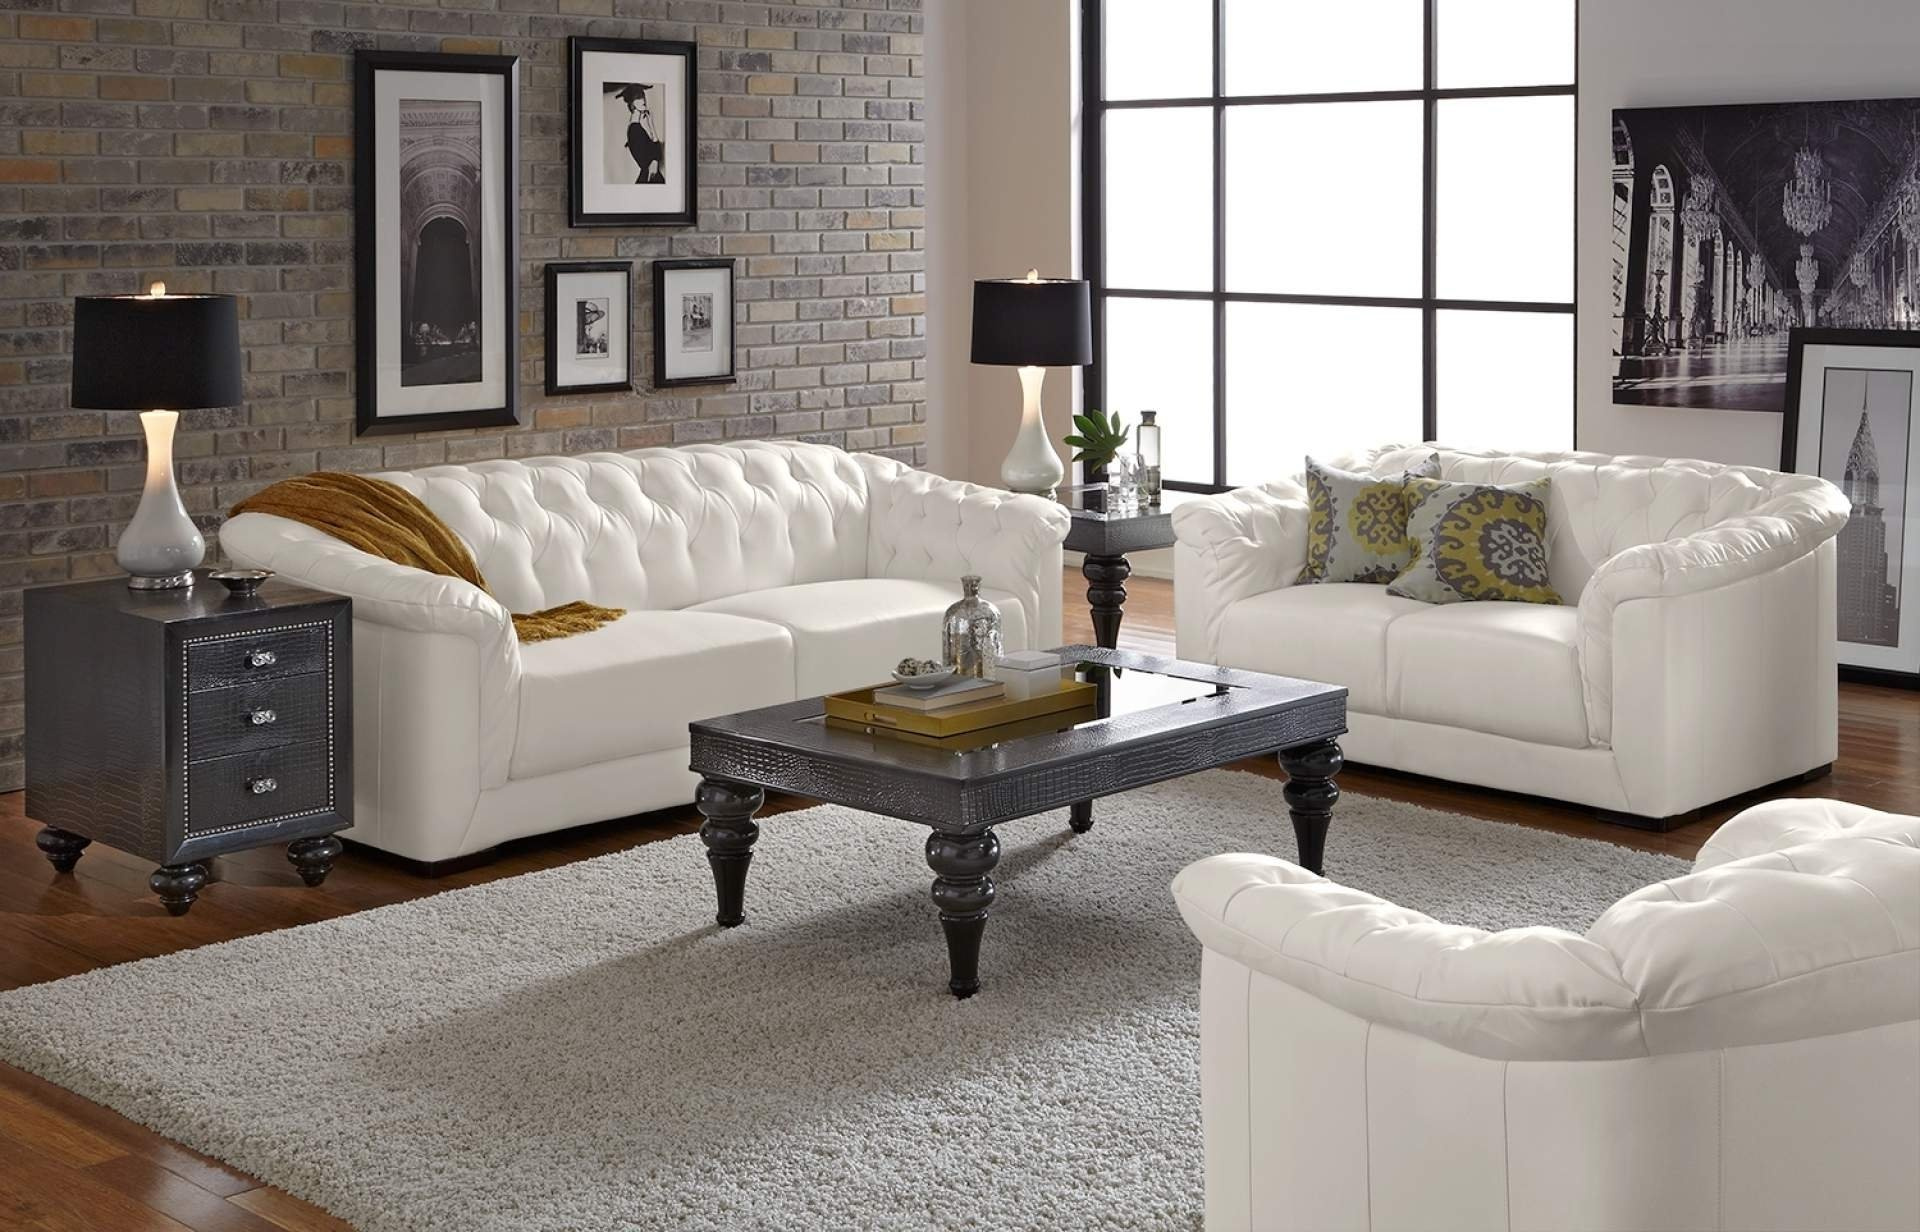 10 Lovable Leather Sofa Living Room Ideas mesmerizing pillow ideas for white leather sofa gallery simple 2021